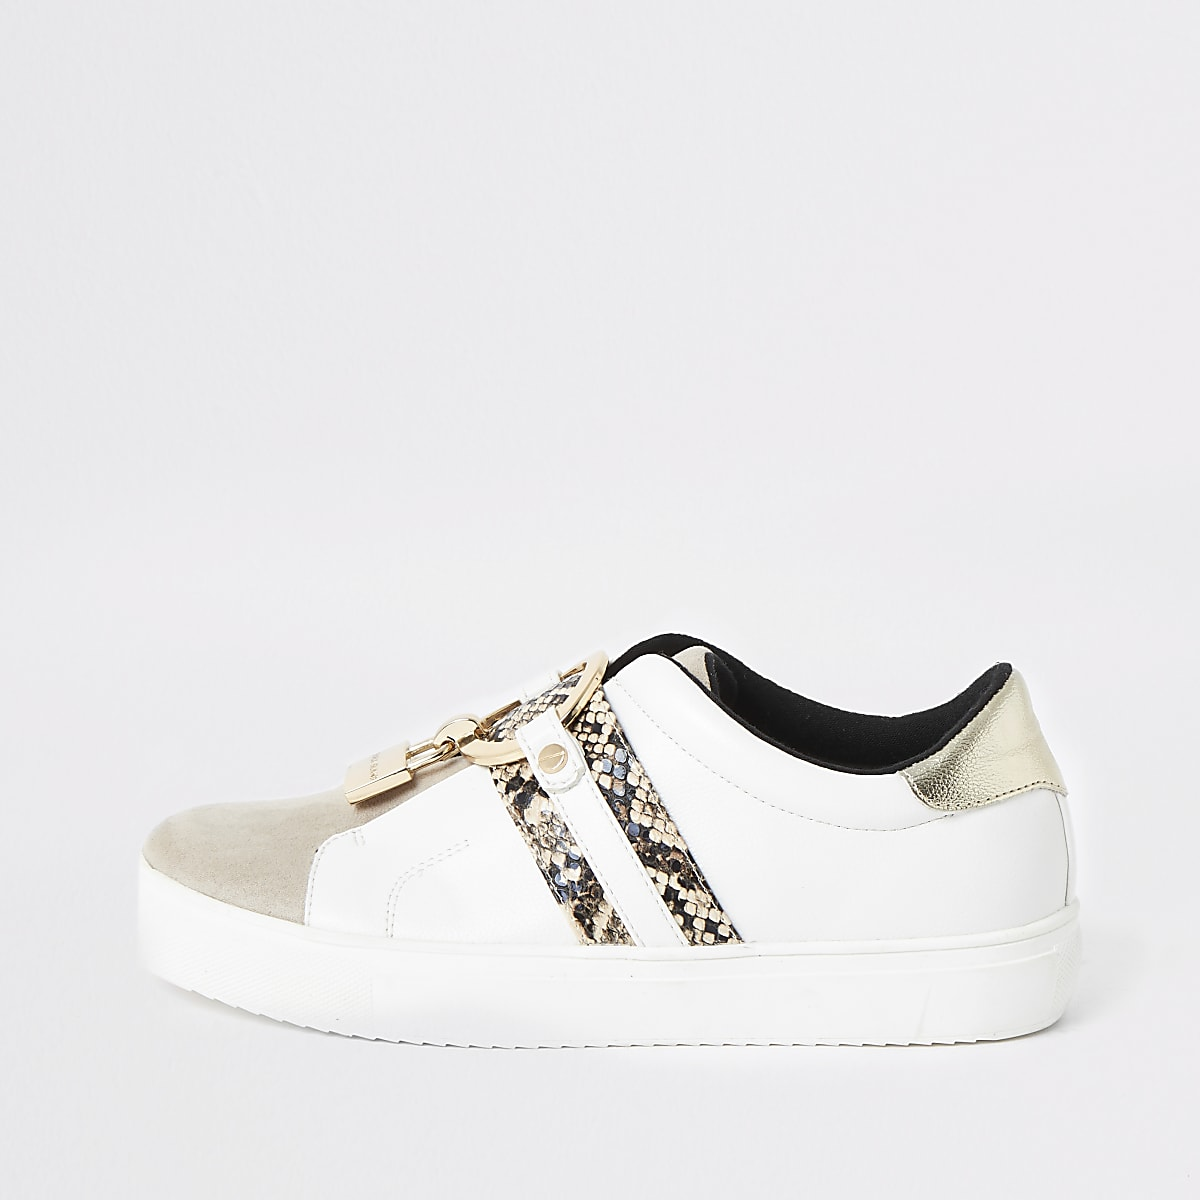 White padlock slip on plimsoll